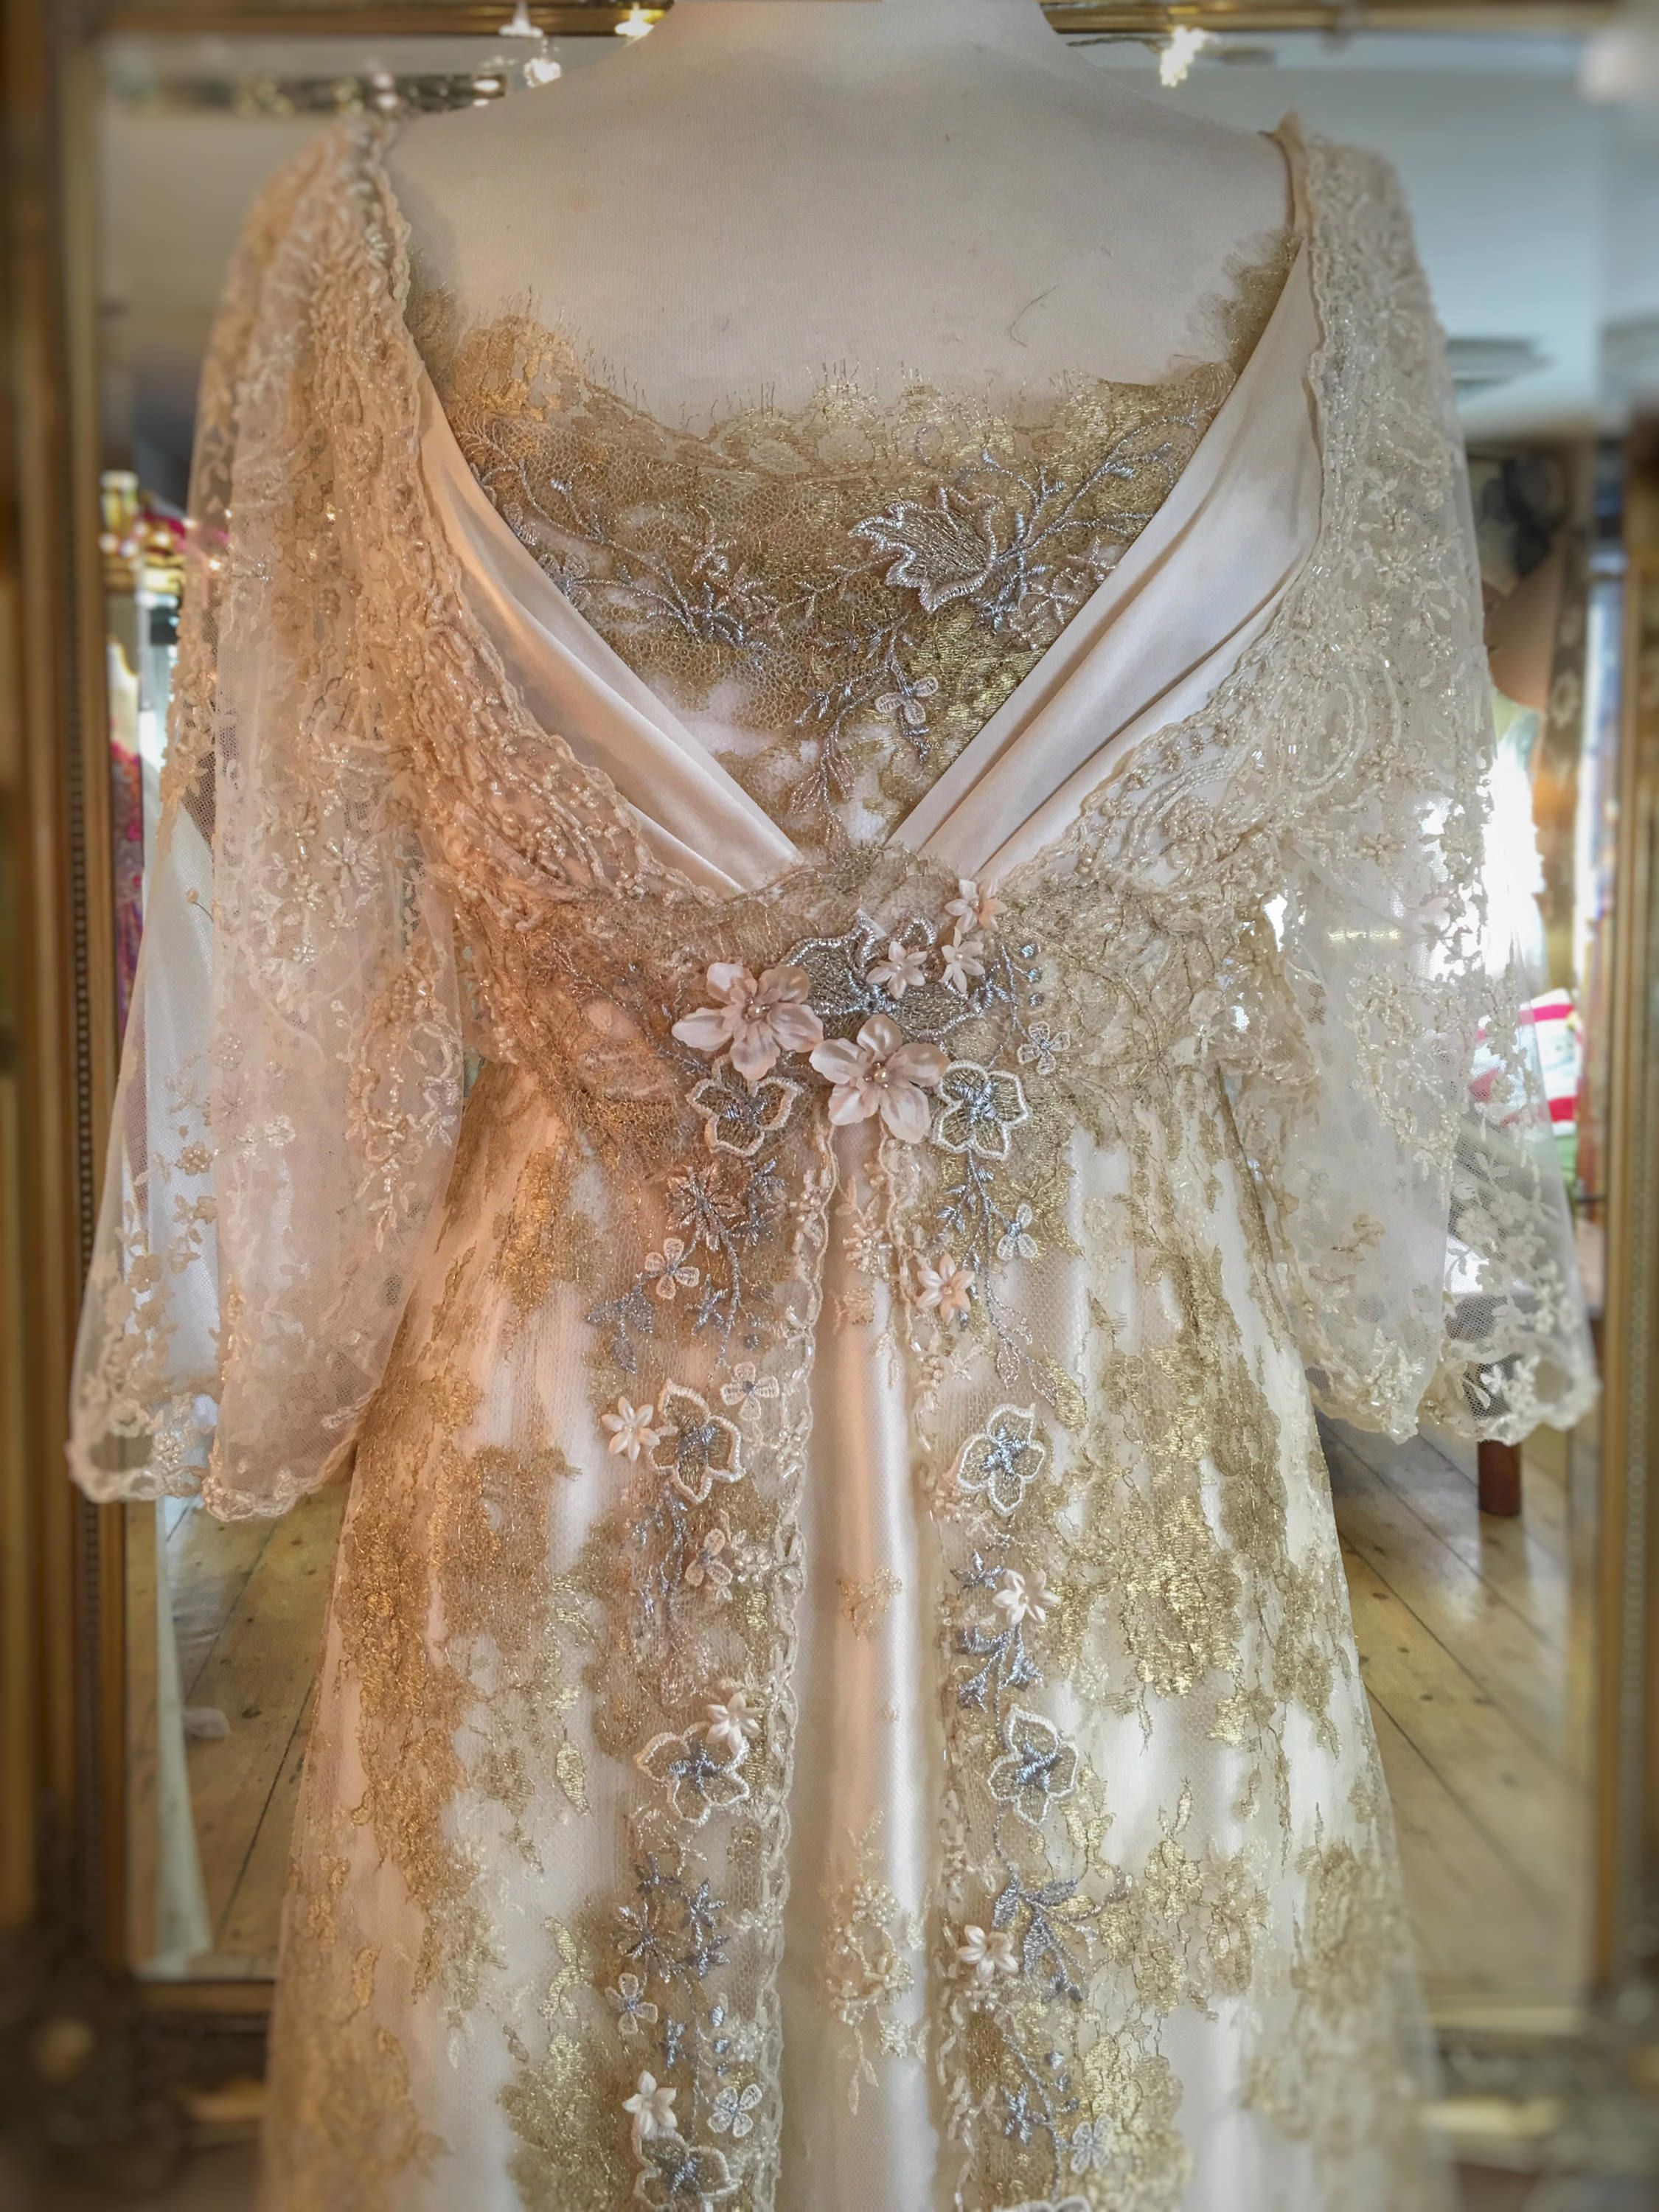 Pale Gold Cream Silk Edwardian Inspired Wedding Dress | Pinterest ...